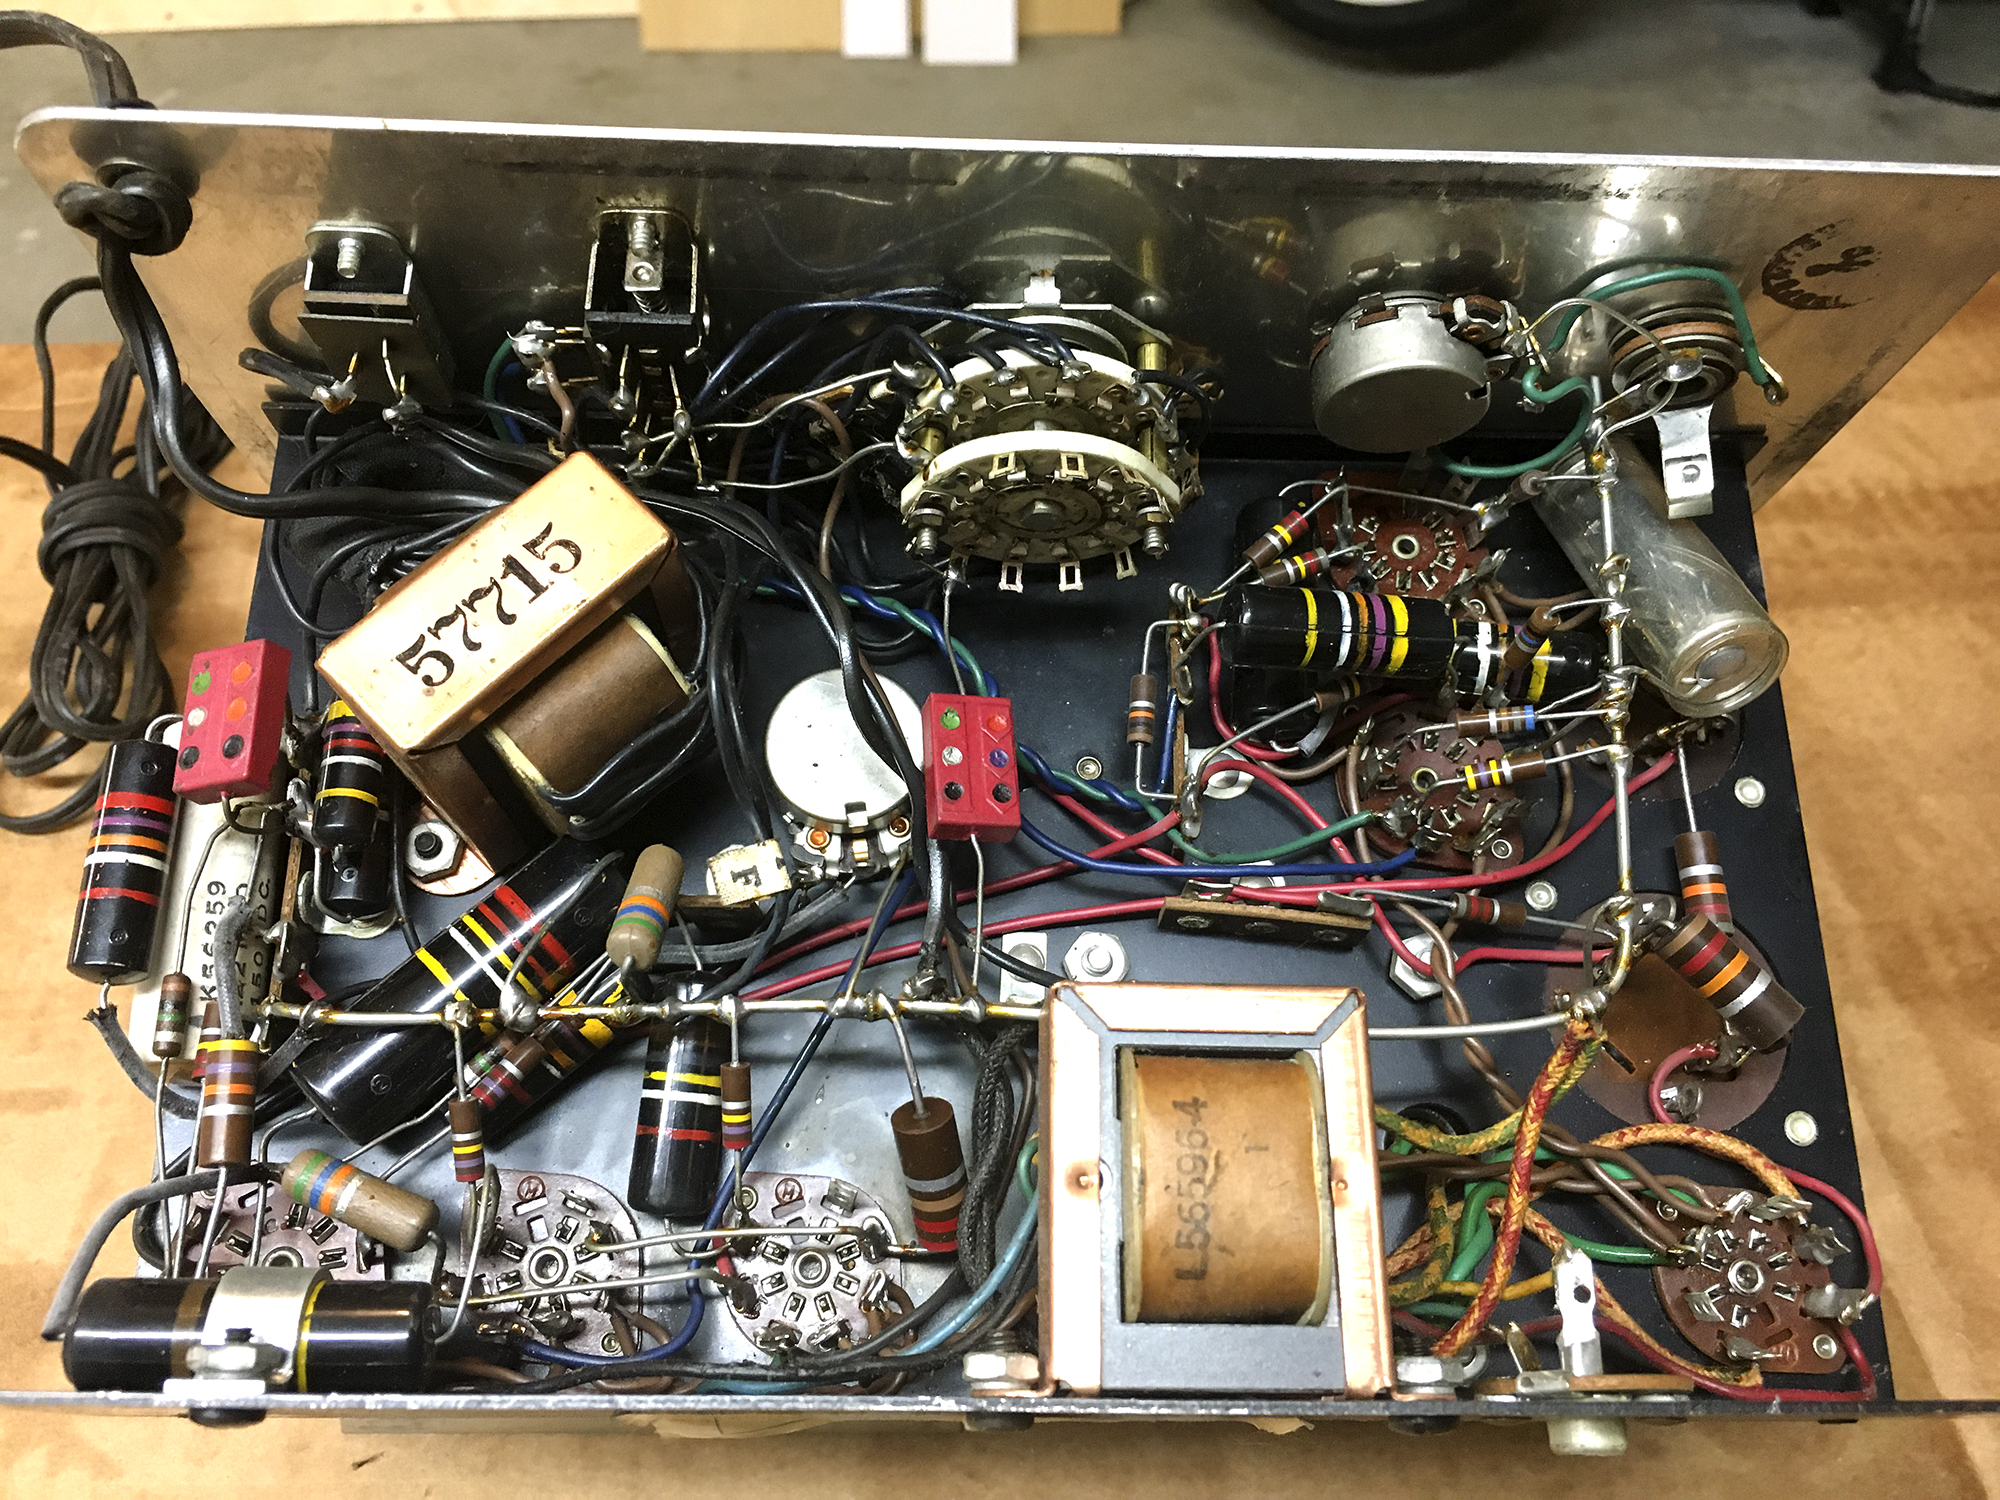 Click image for larger version.  Name:Conn Vacuum Tube StroboTuner components-2.jpg Views:34 Size:2.32 MB ID:56585